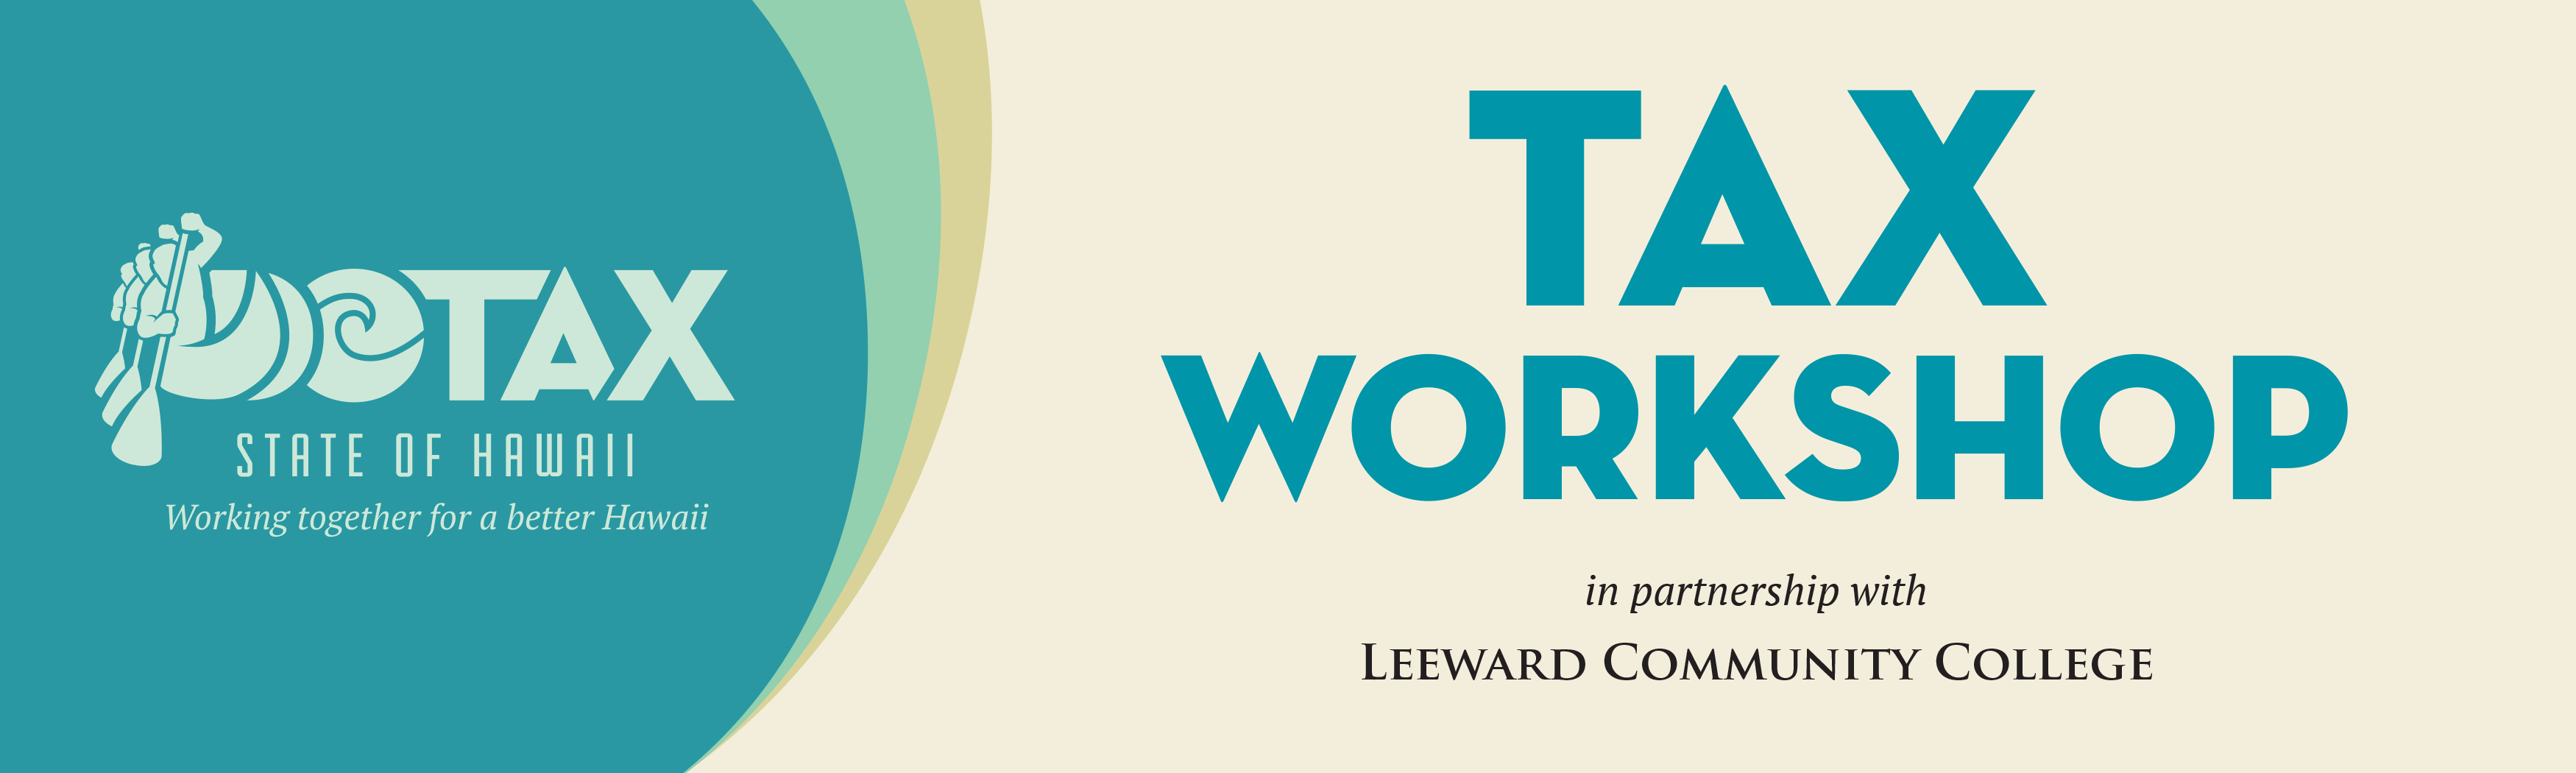 logo for 2020 annual Tax workshop